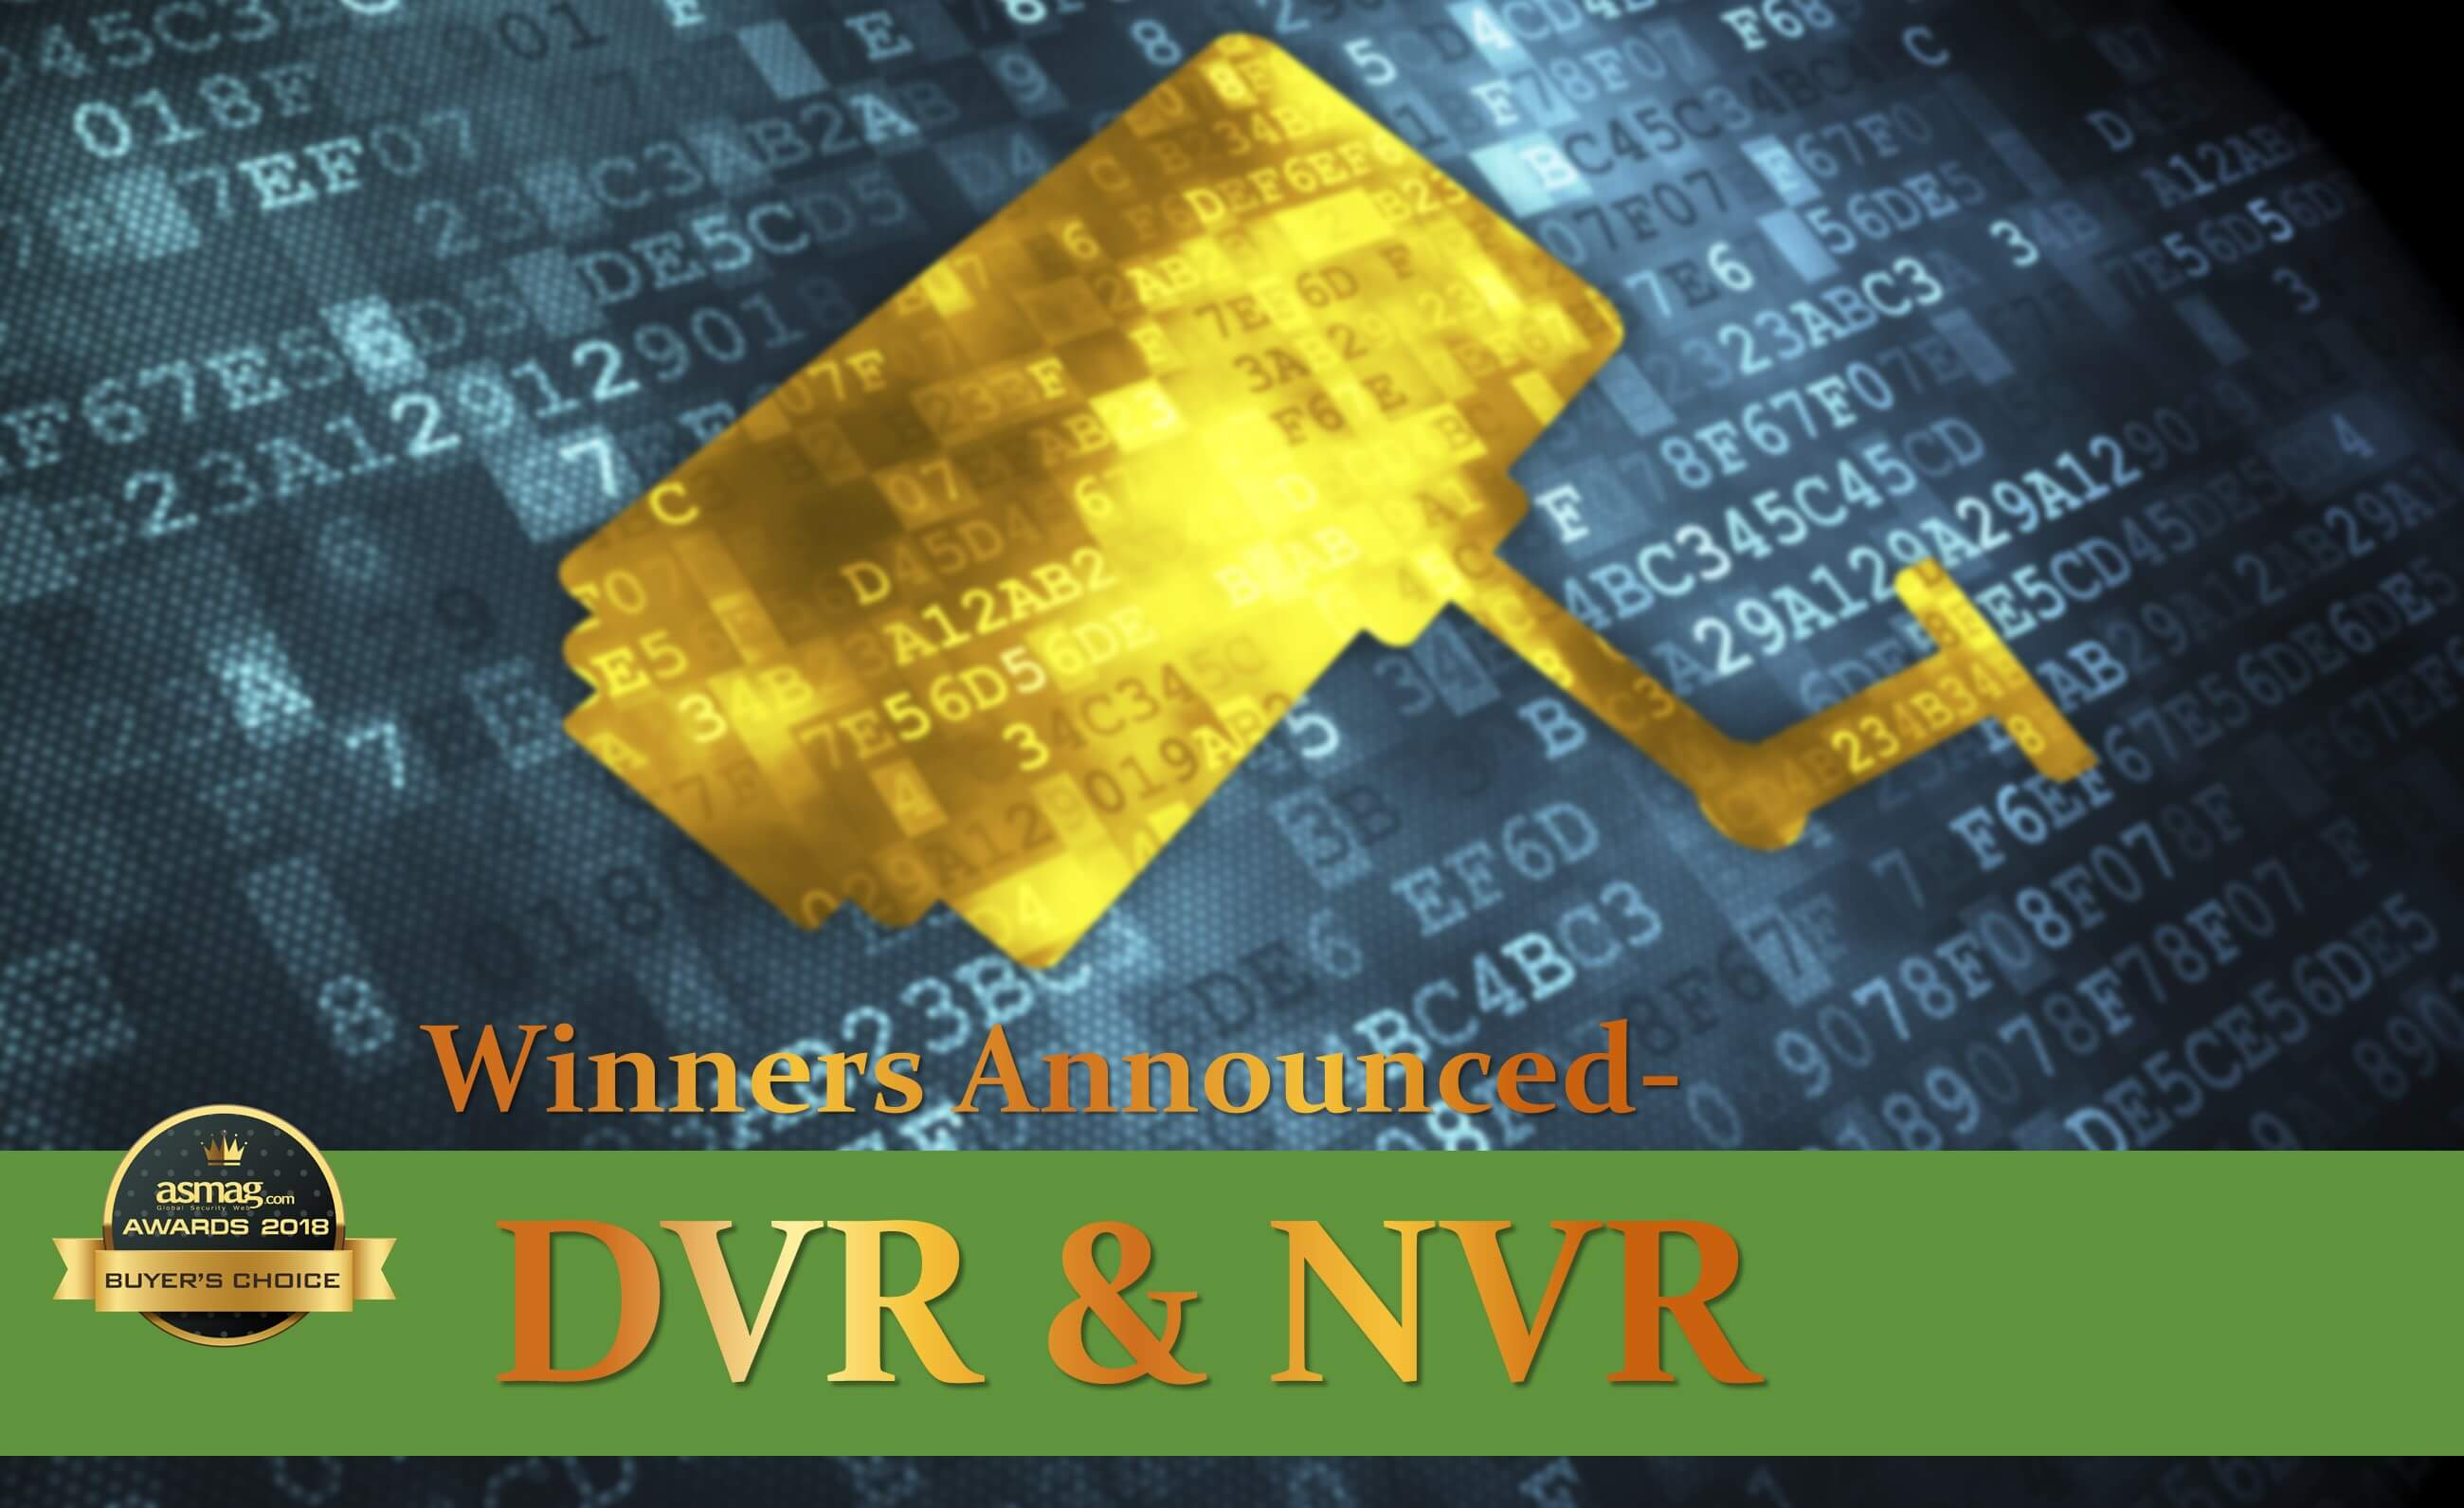 Scalable NVRs & DVRs Top 2018 Buyers' Choice Awards